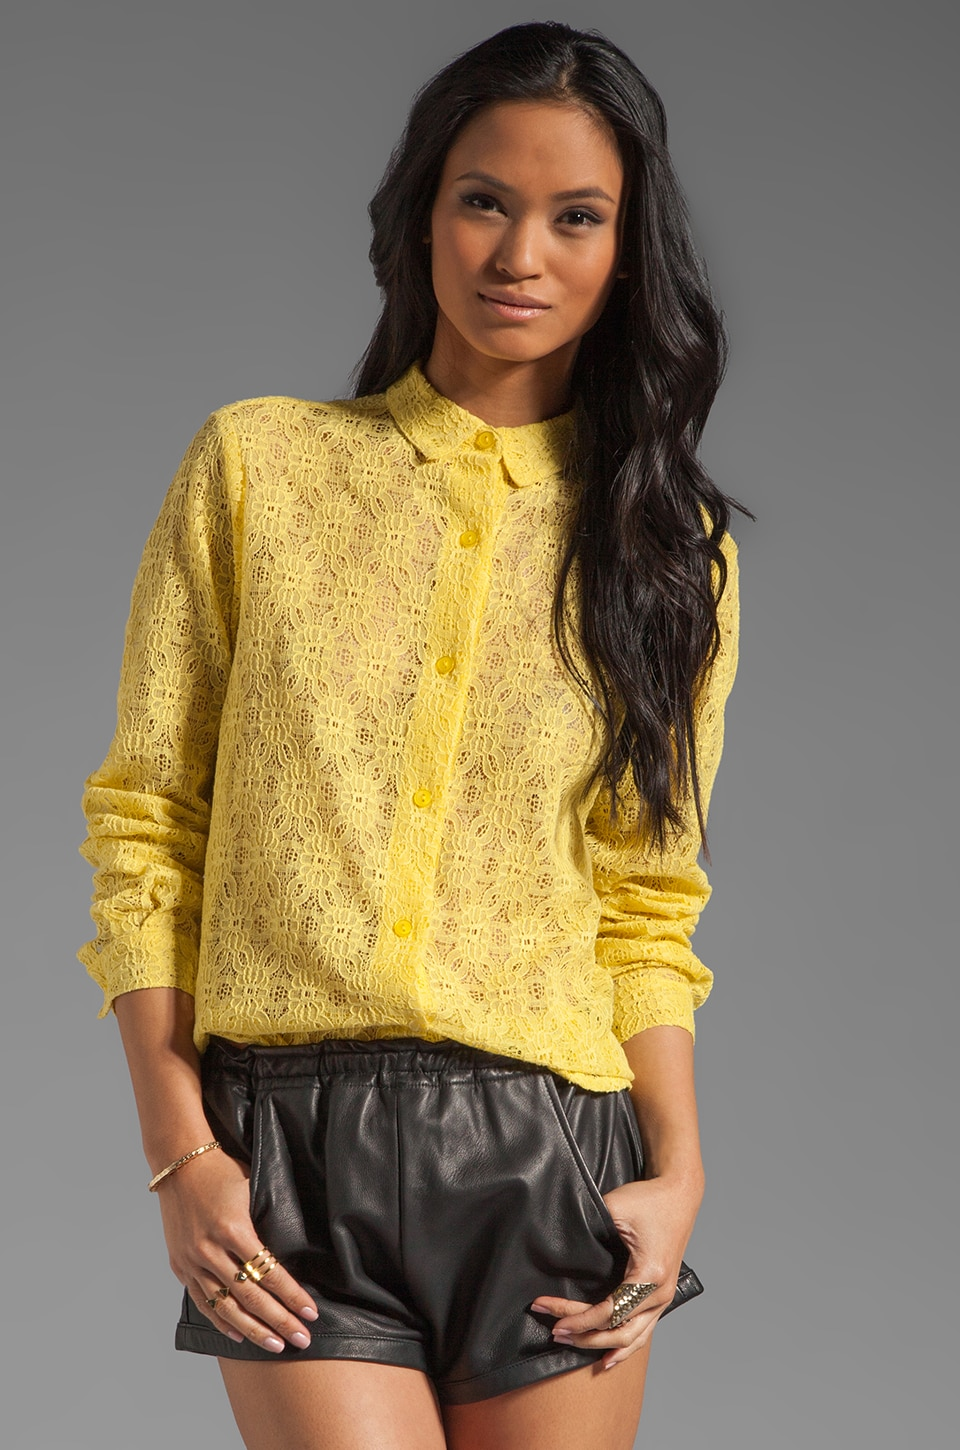 SAM&LAVI Paulette Blouse in Sunshine